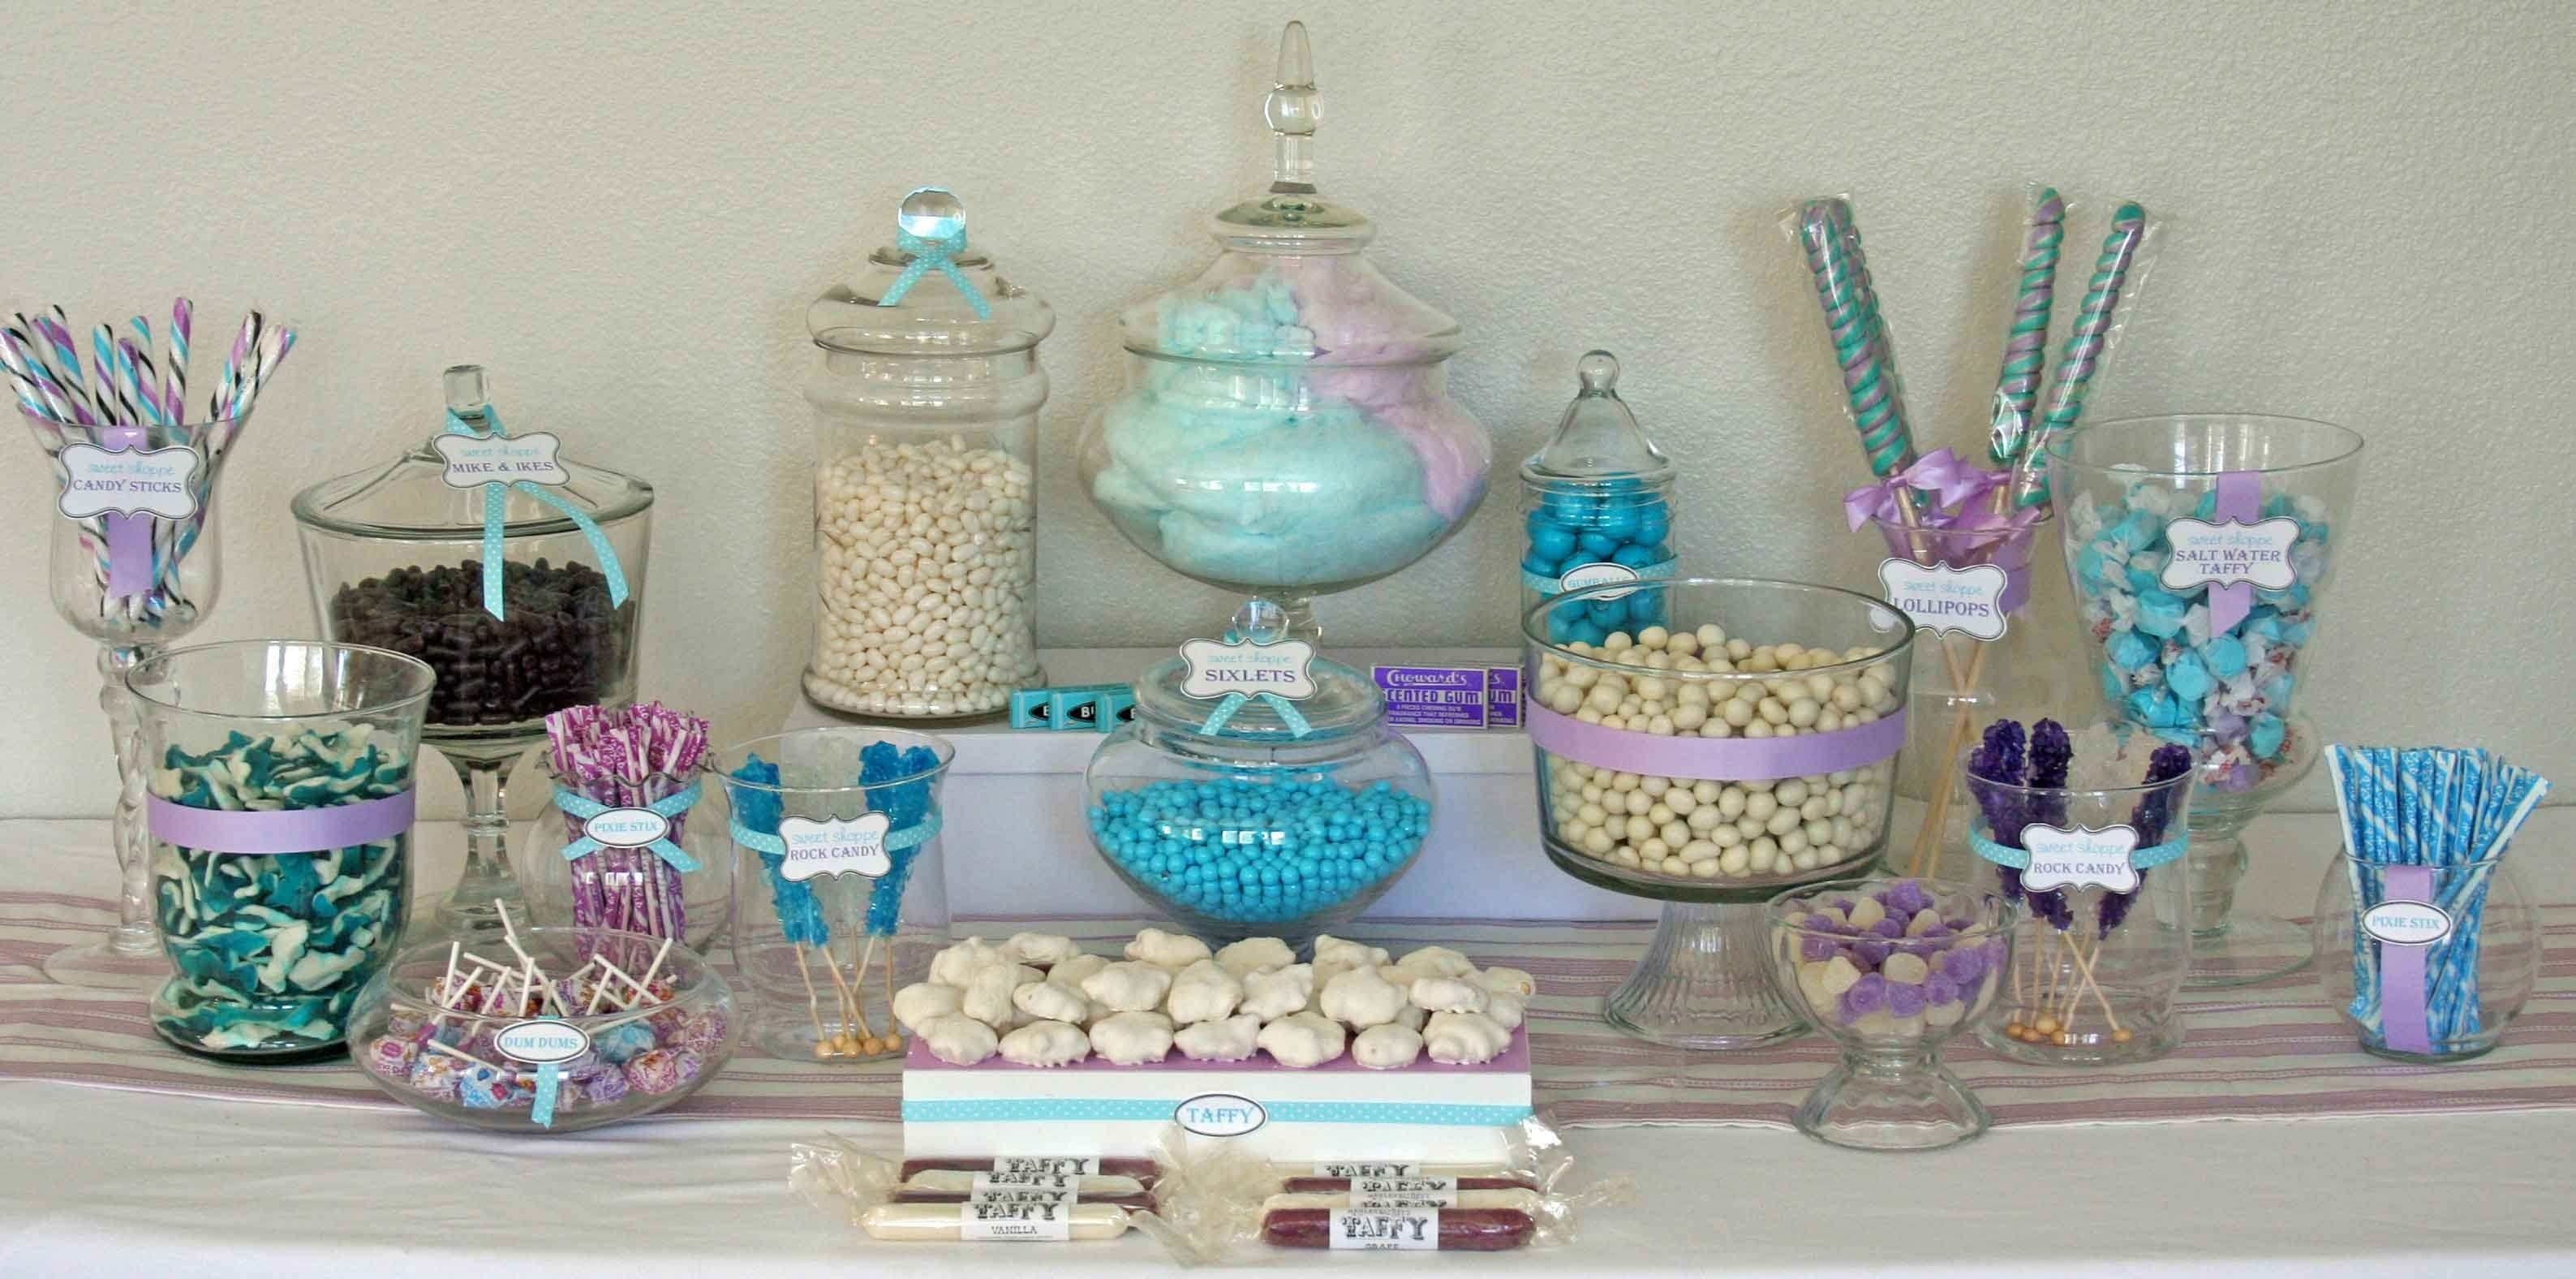 10 Unique Candy Buffet Ideas For Baby Shower how to create the perfect diy candy buffet my love of style my 2 2020